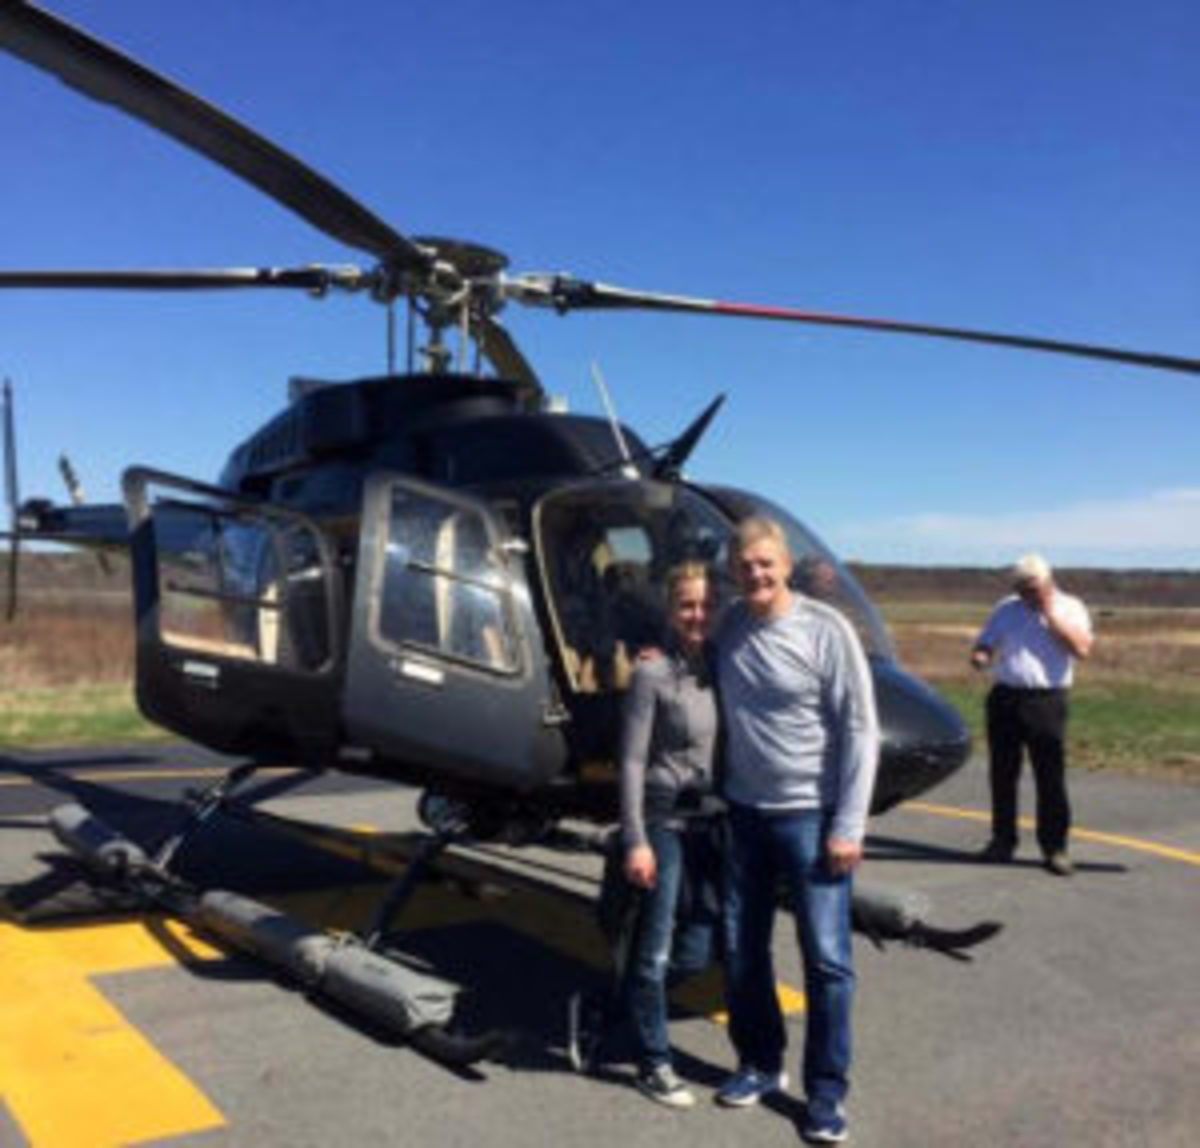 Former Boston Bruins hockey star Chris Nilan (right) in front of the helicopter that was flown by former Montreal Canadiens star Guy LaFleur to a Cardboard Promotions' show. Both Nilan and LaFleur were autograph signers at the show.